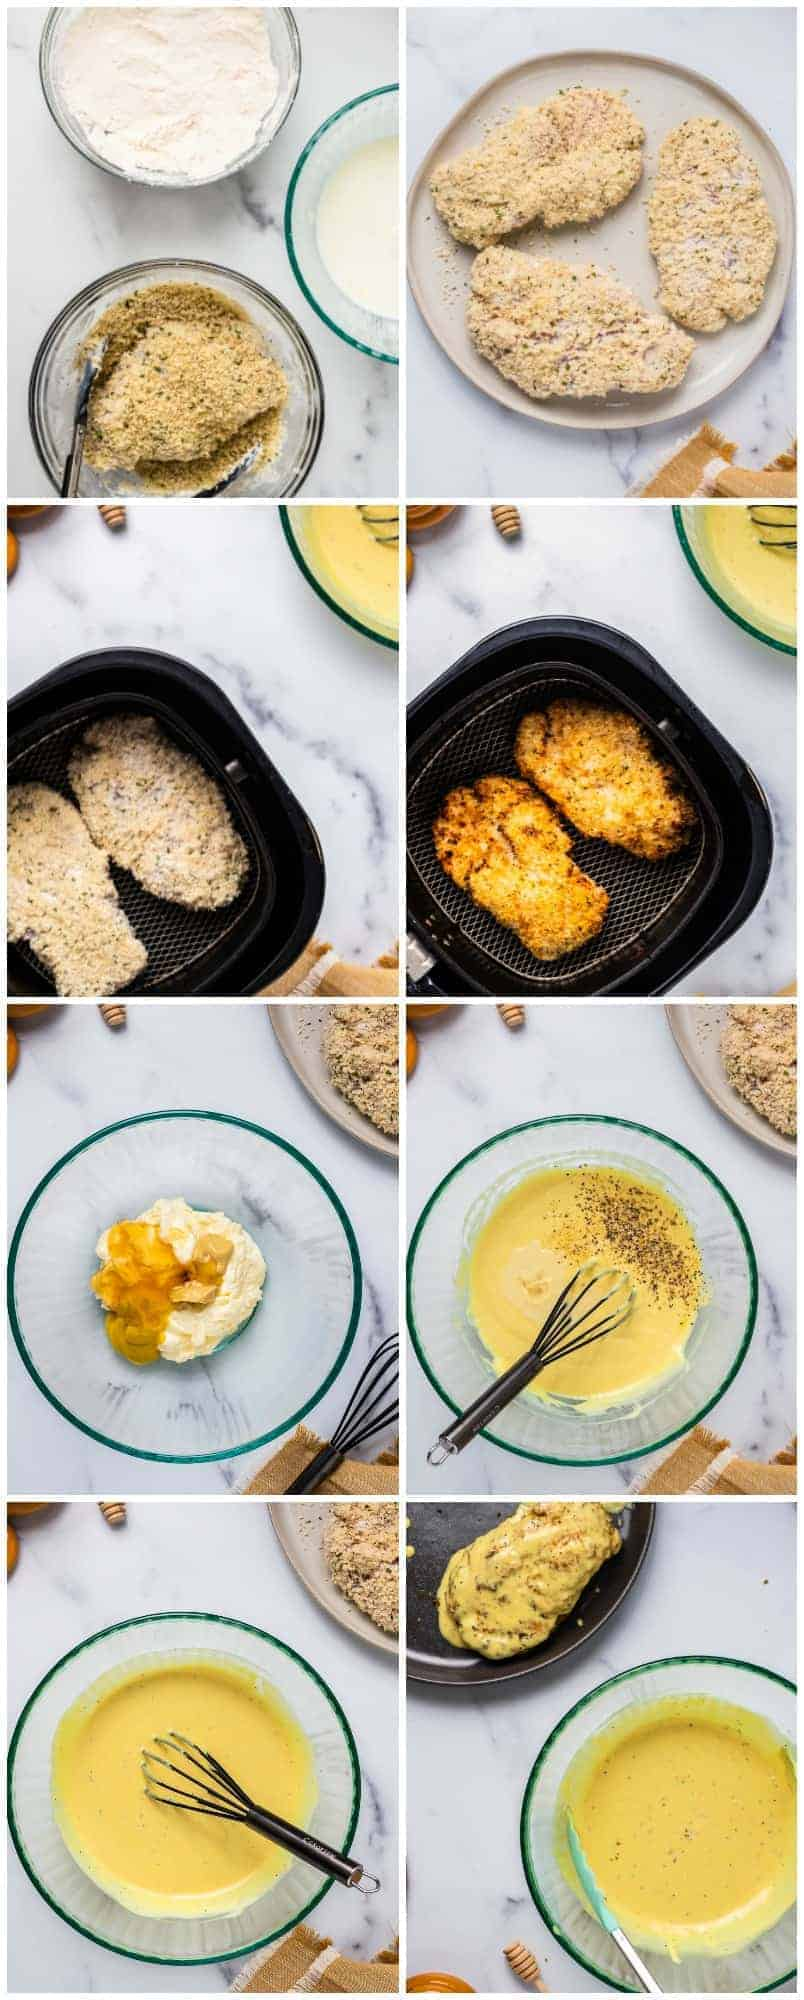 Step by step photos of how to make air fryer honey mustard chicken breast.